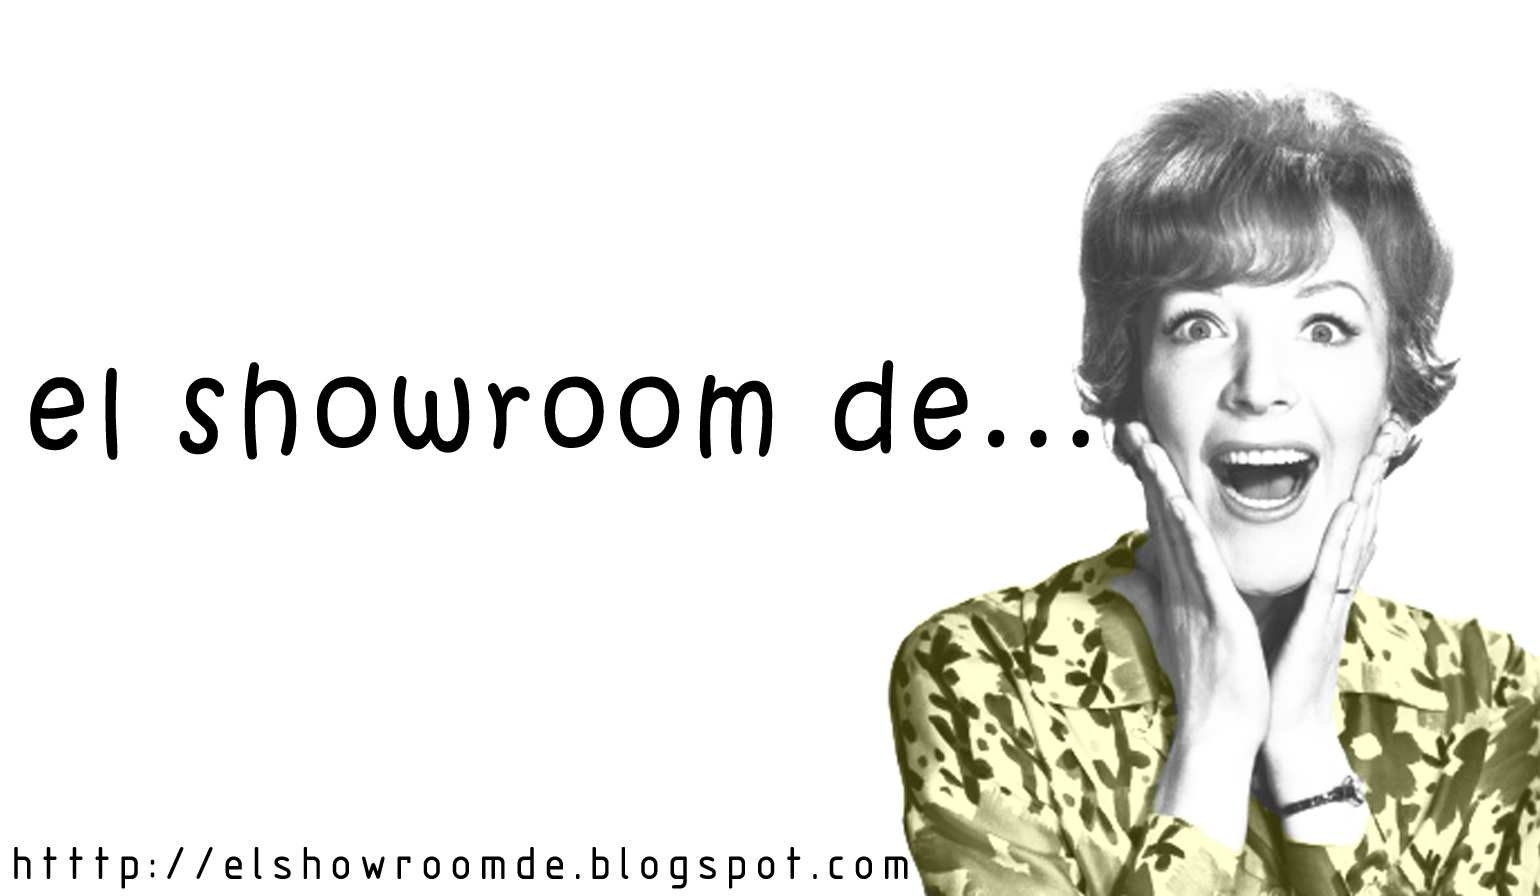 el showroom de...